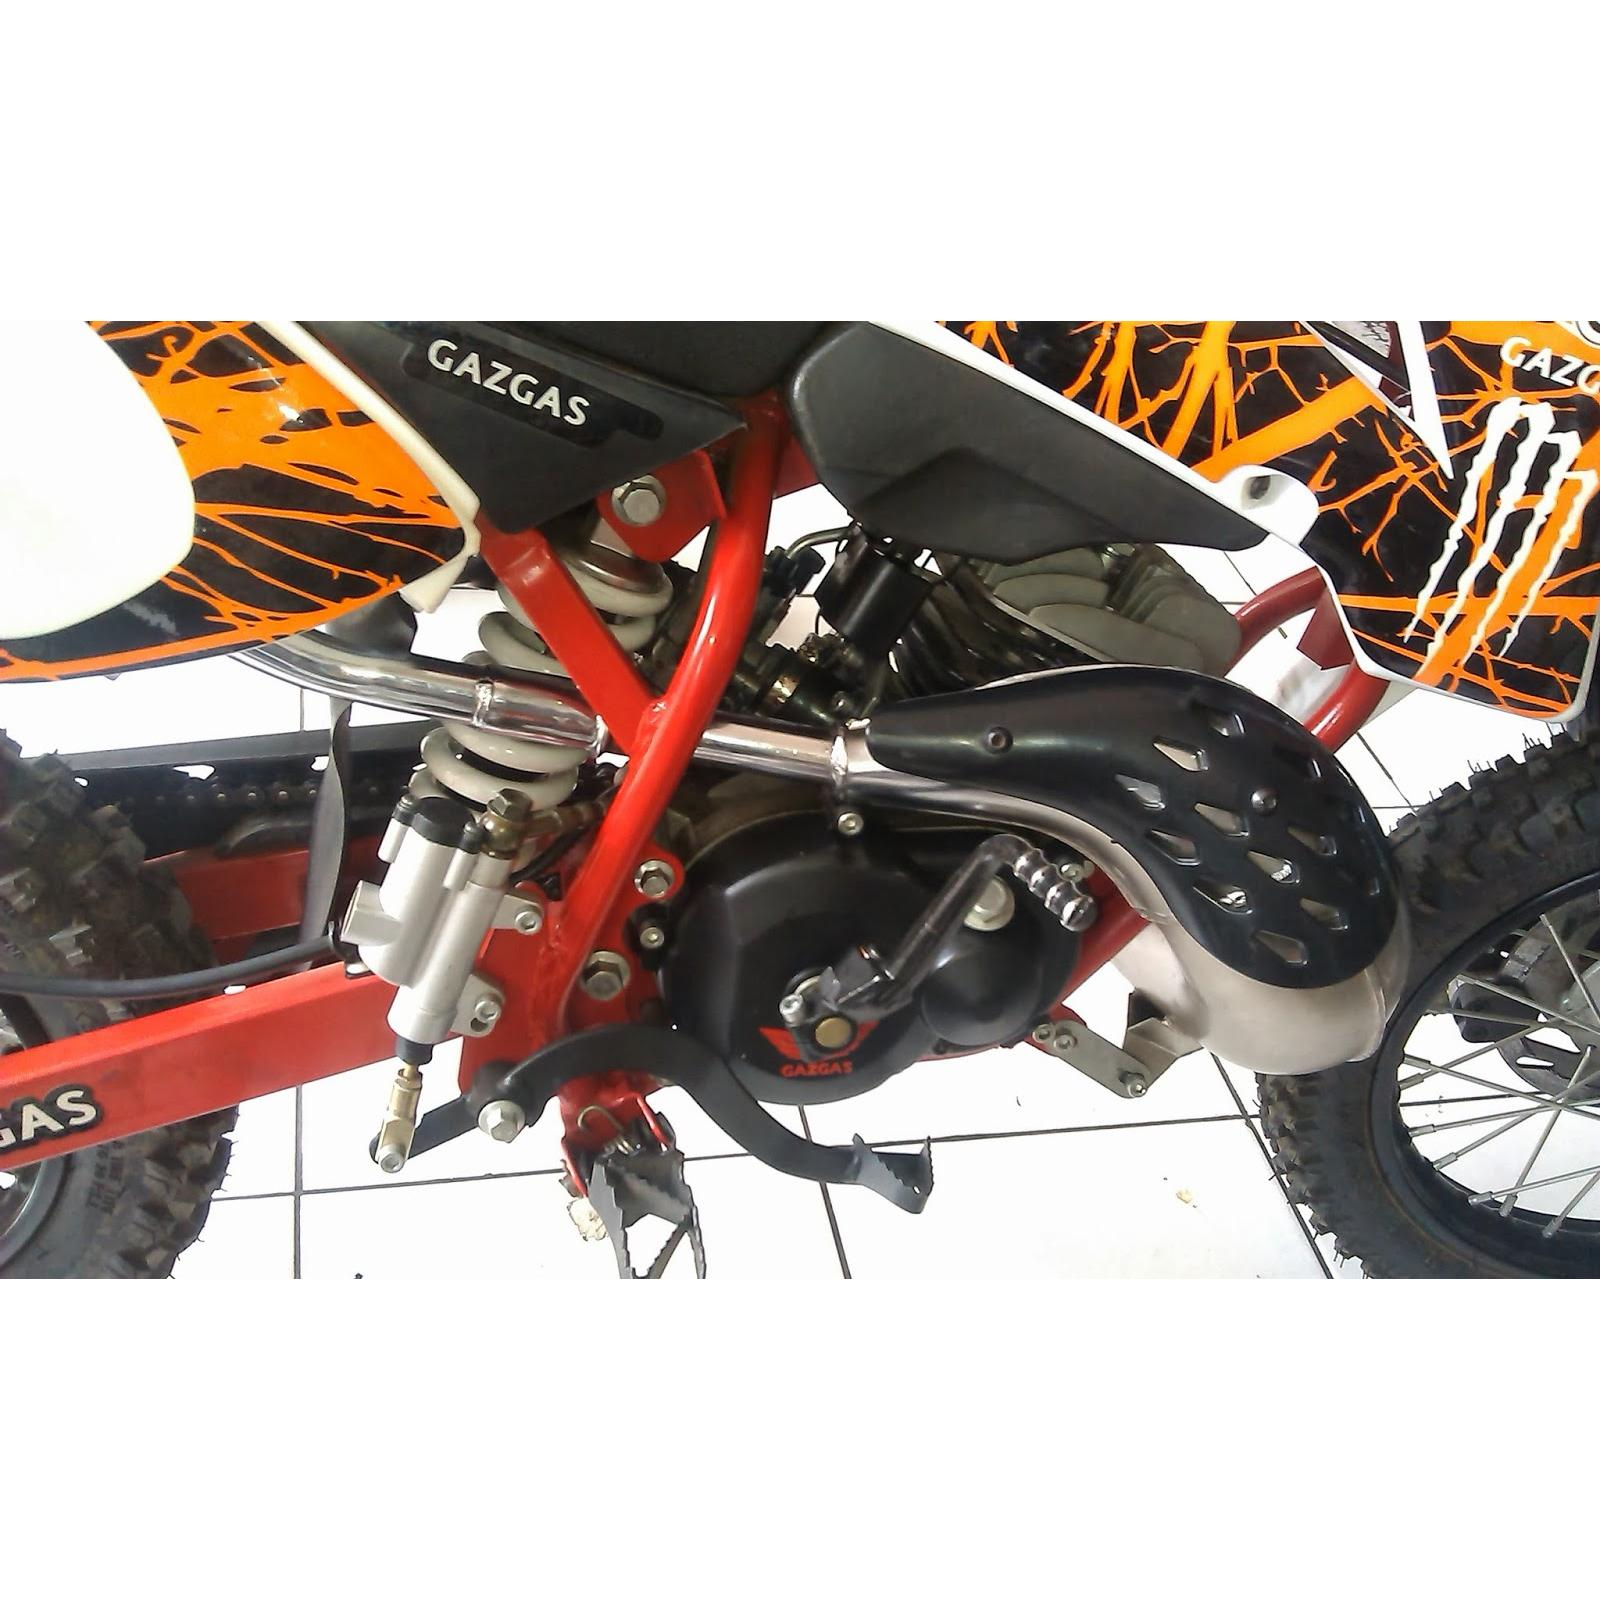 harga Gazgas Mini Trail 50cc/2 Tak/Mesin Motor (Matic) elevenia.co.id